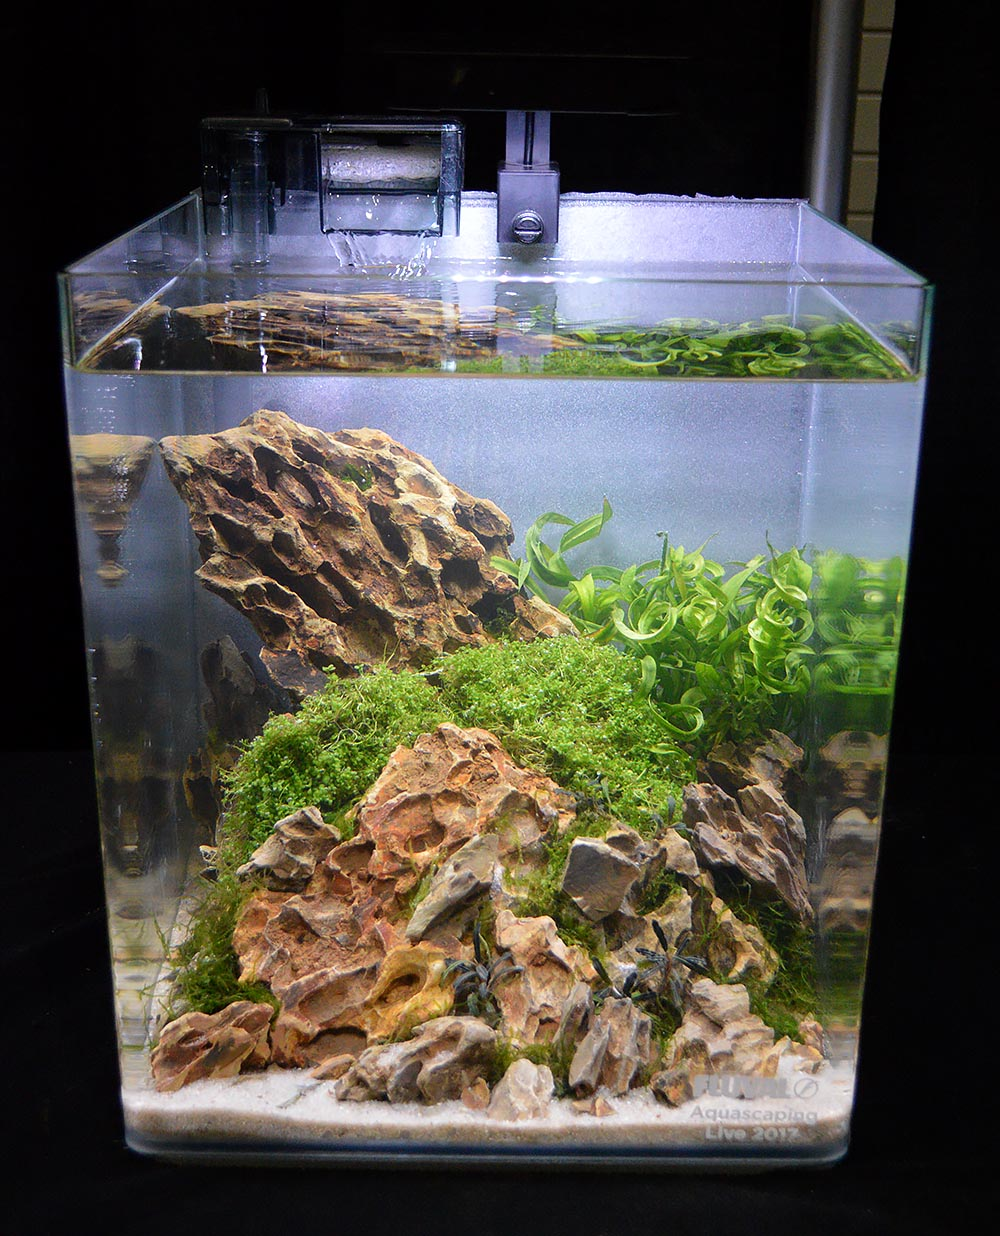 Aquascape by Alex Forsythe